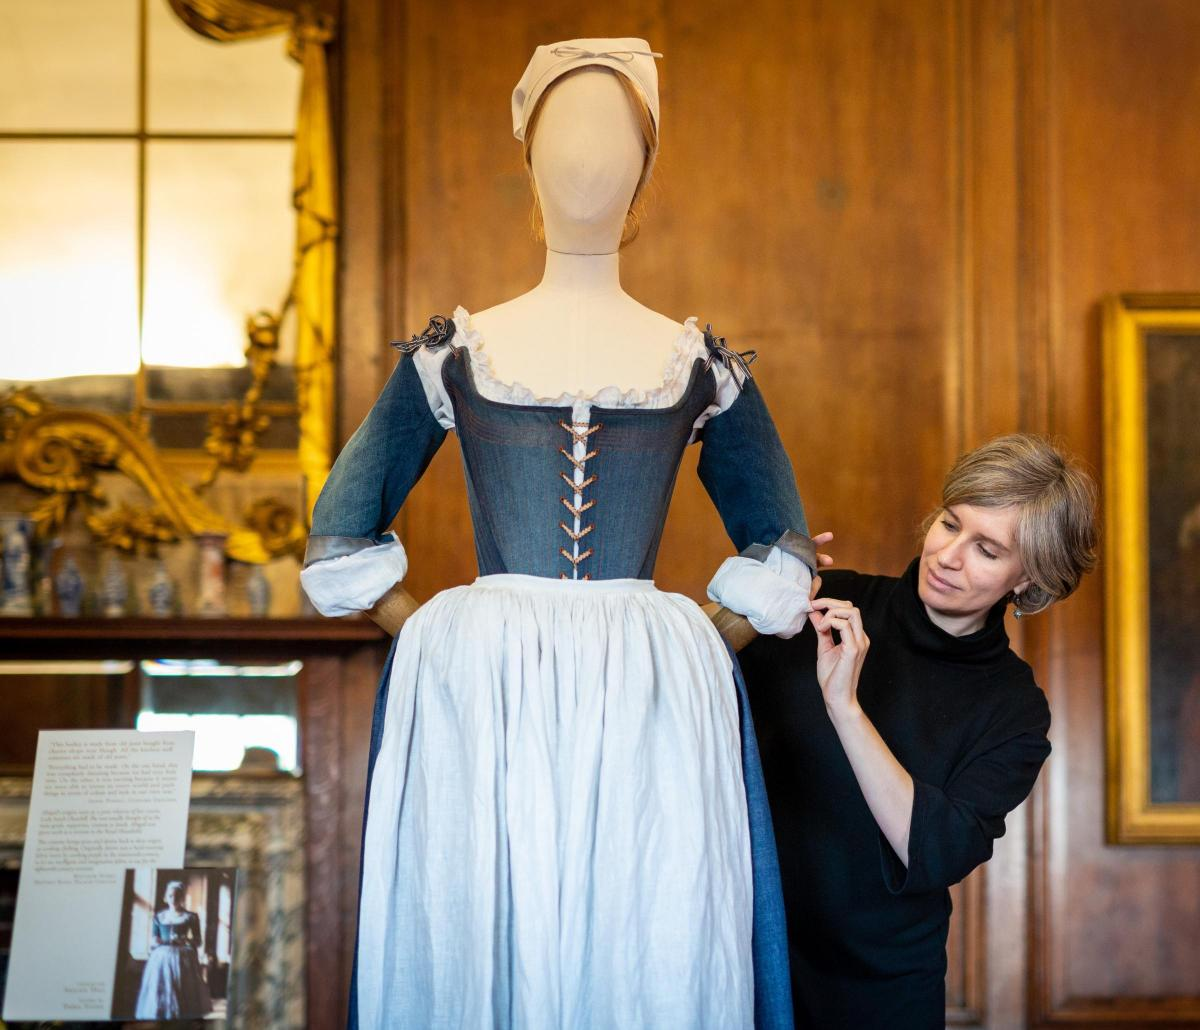 Costumes from BAFTA nominated film The Favourite to be